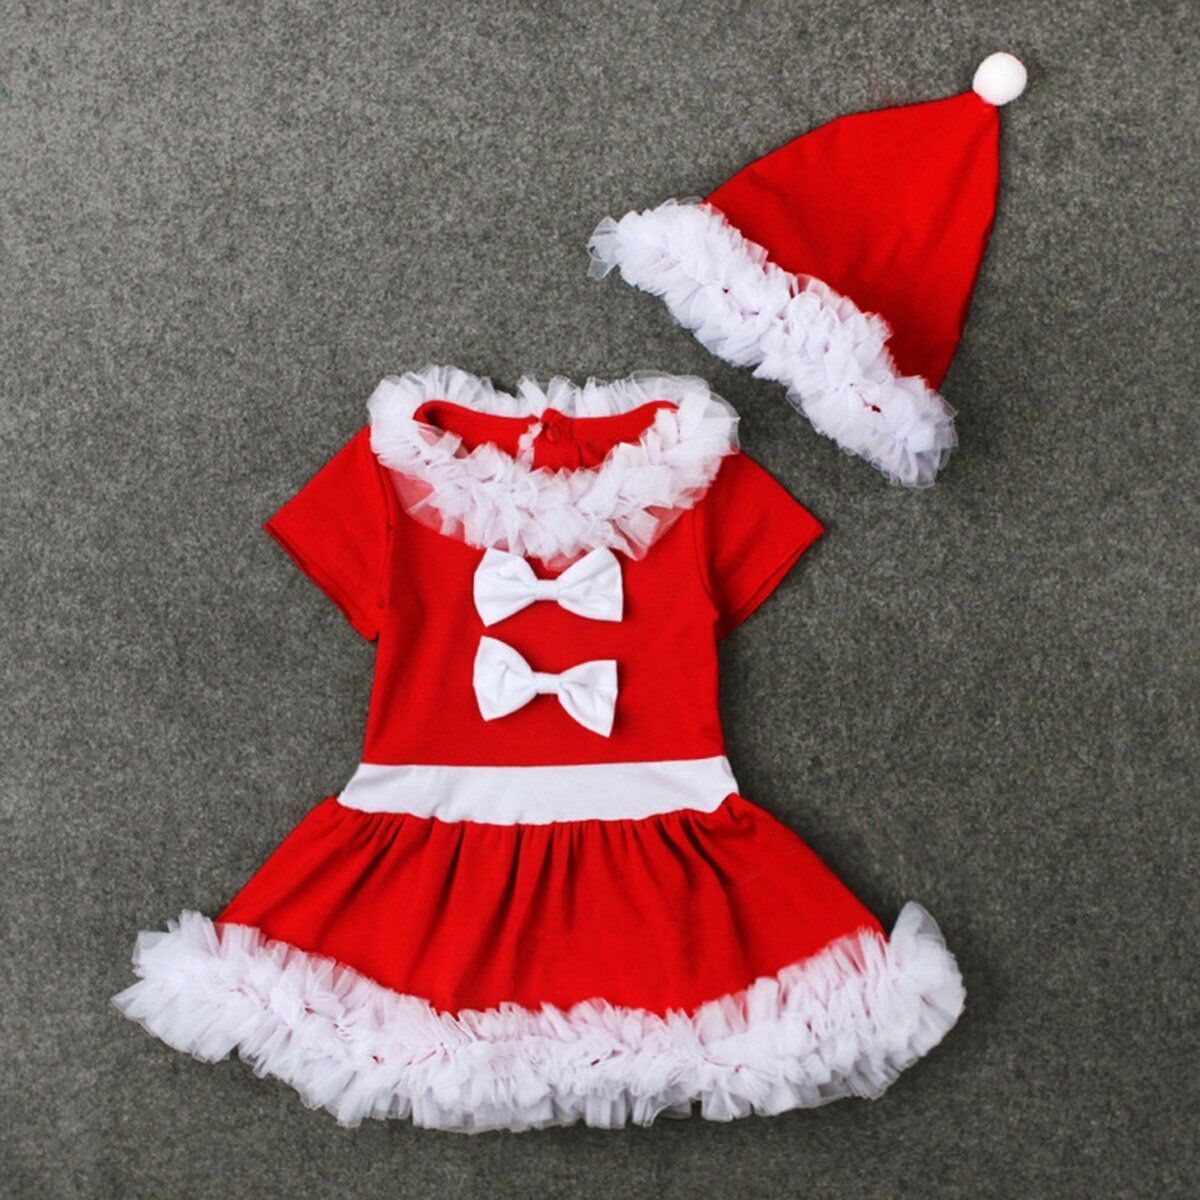 Baby Girl Christmas Dress Clothes Costume Bowknot Party Dresses+Hat 2Pcs Outfit